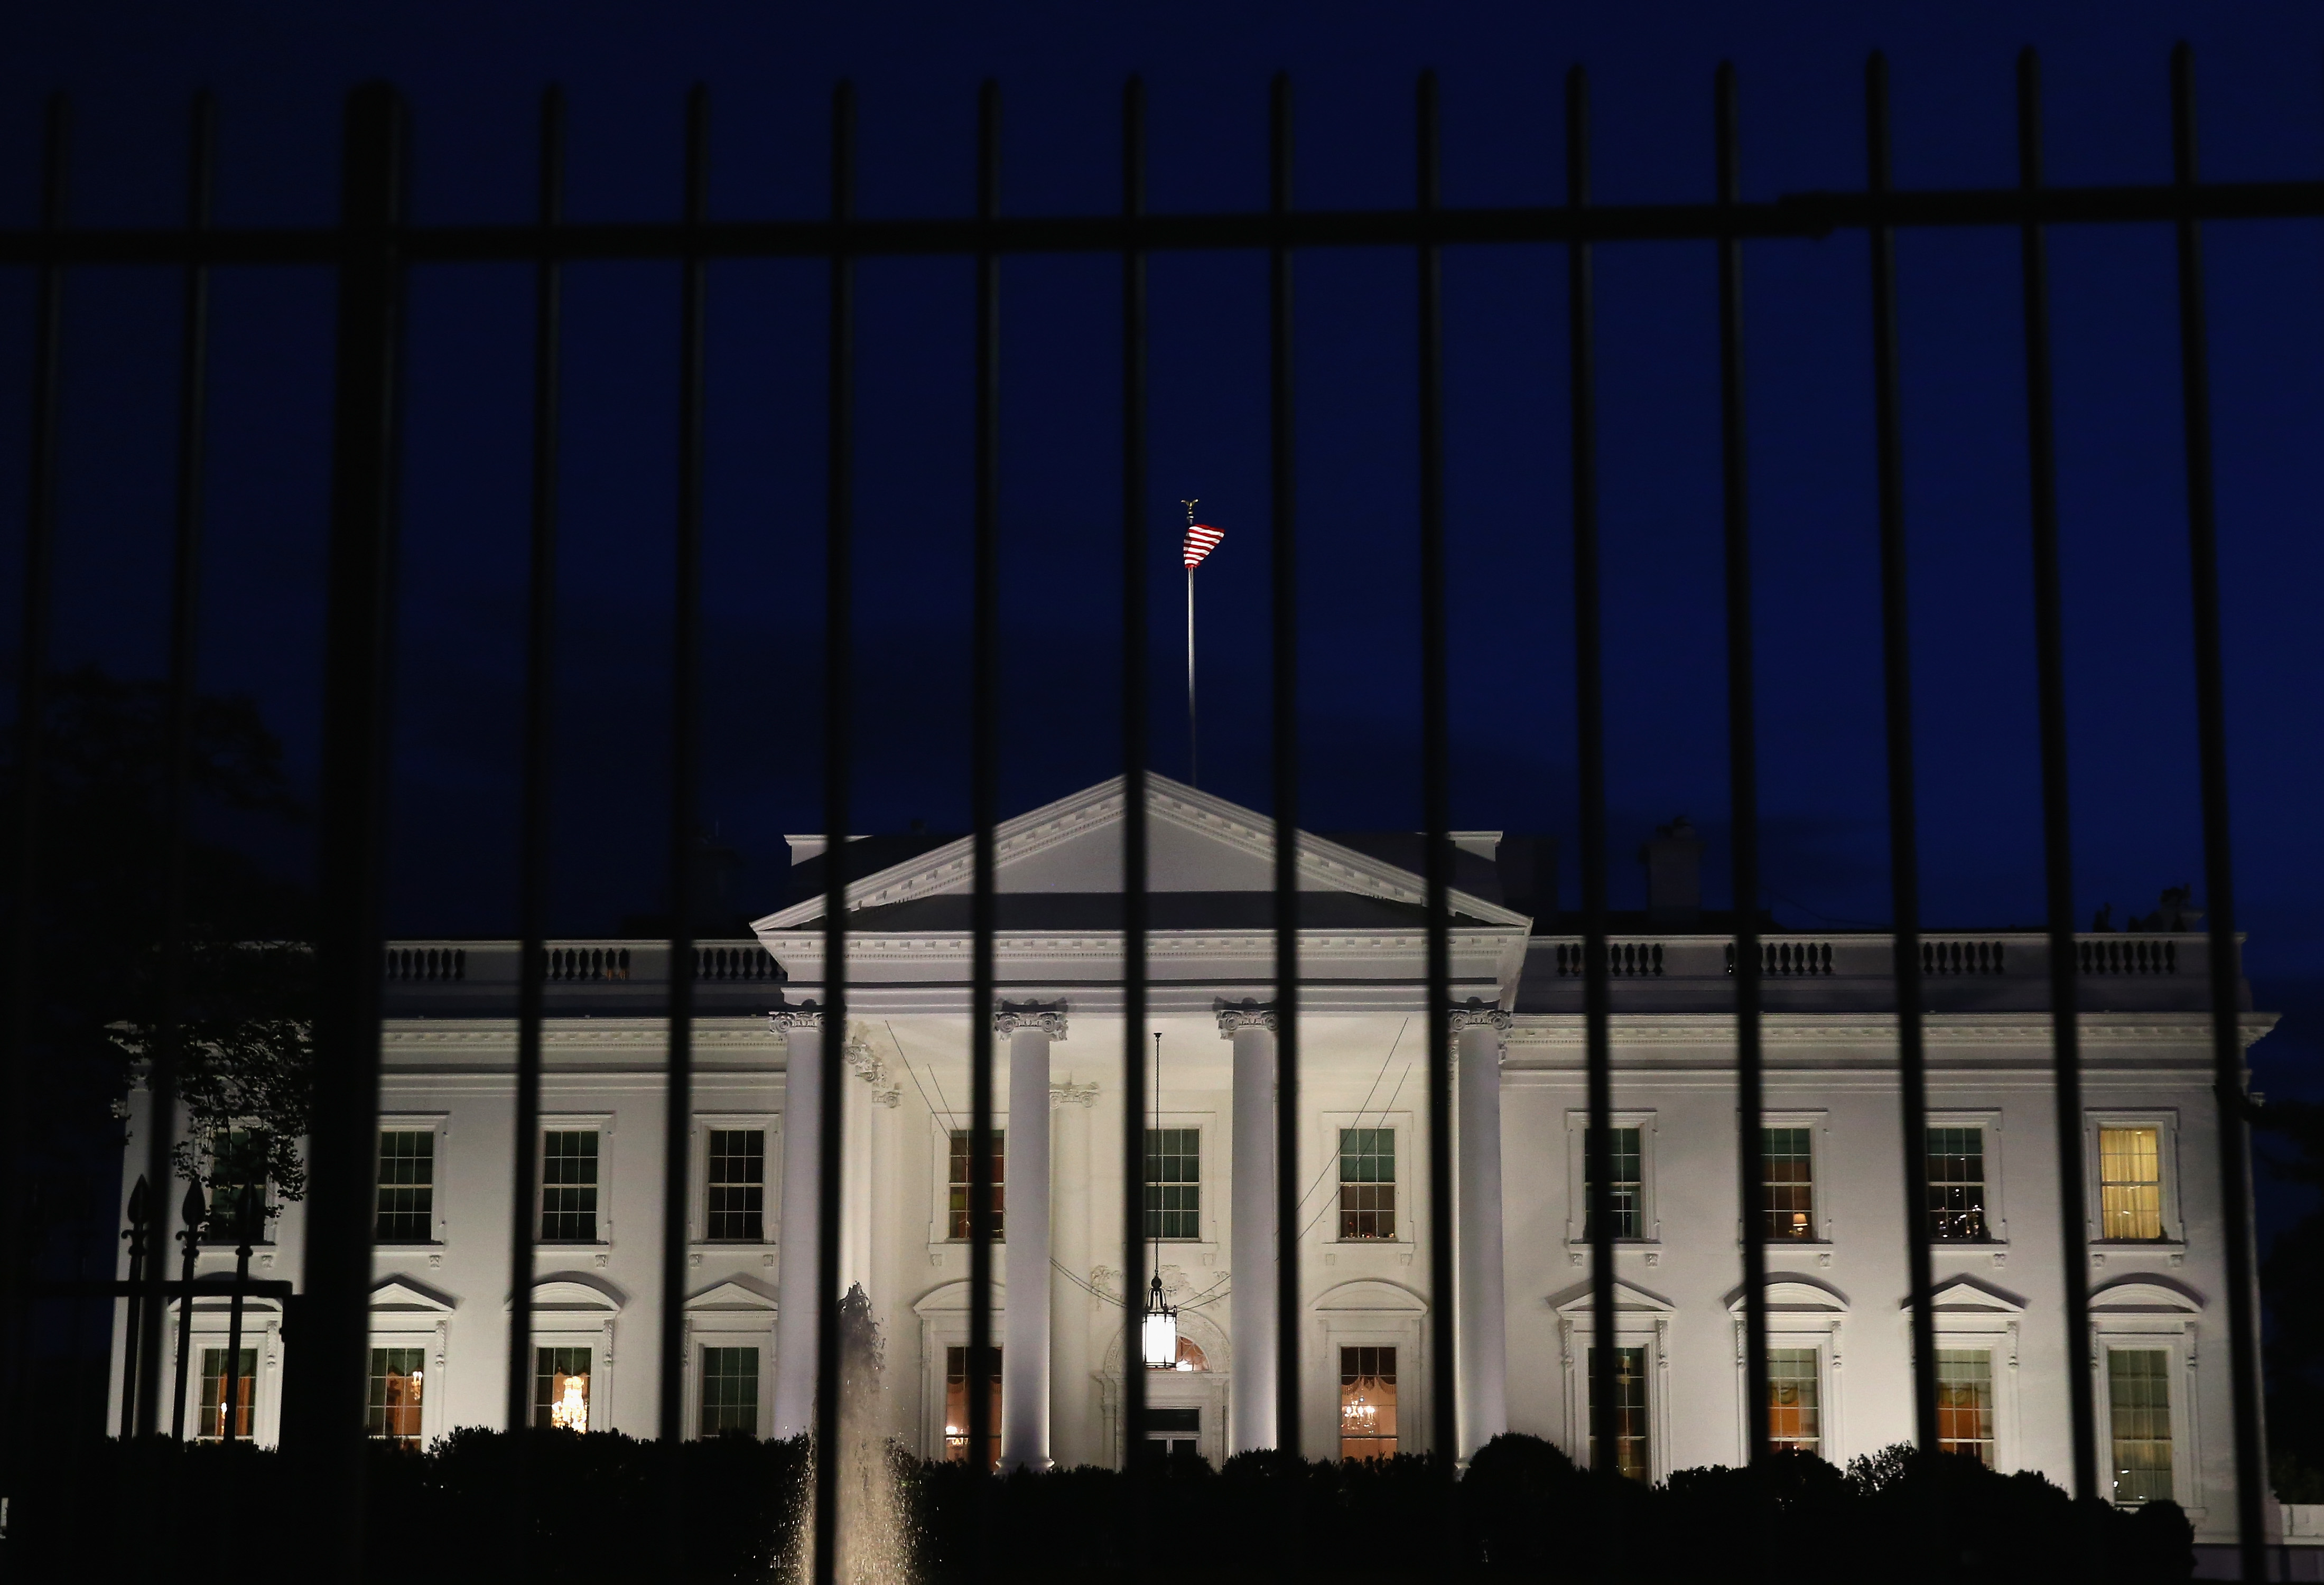 A tall security fence stands in front of the White House on Nov. 4, 2014, in Washington, D.C.